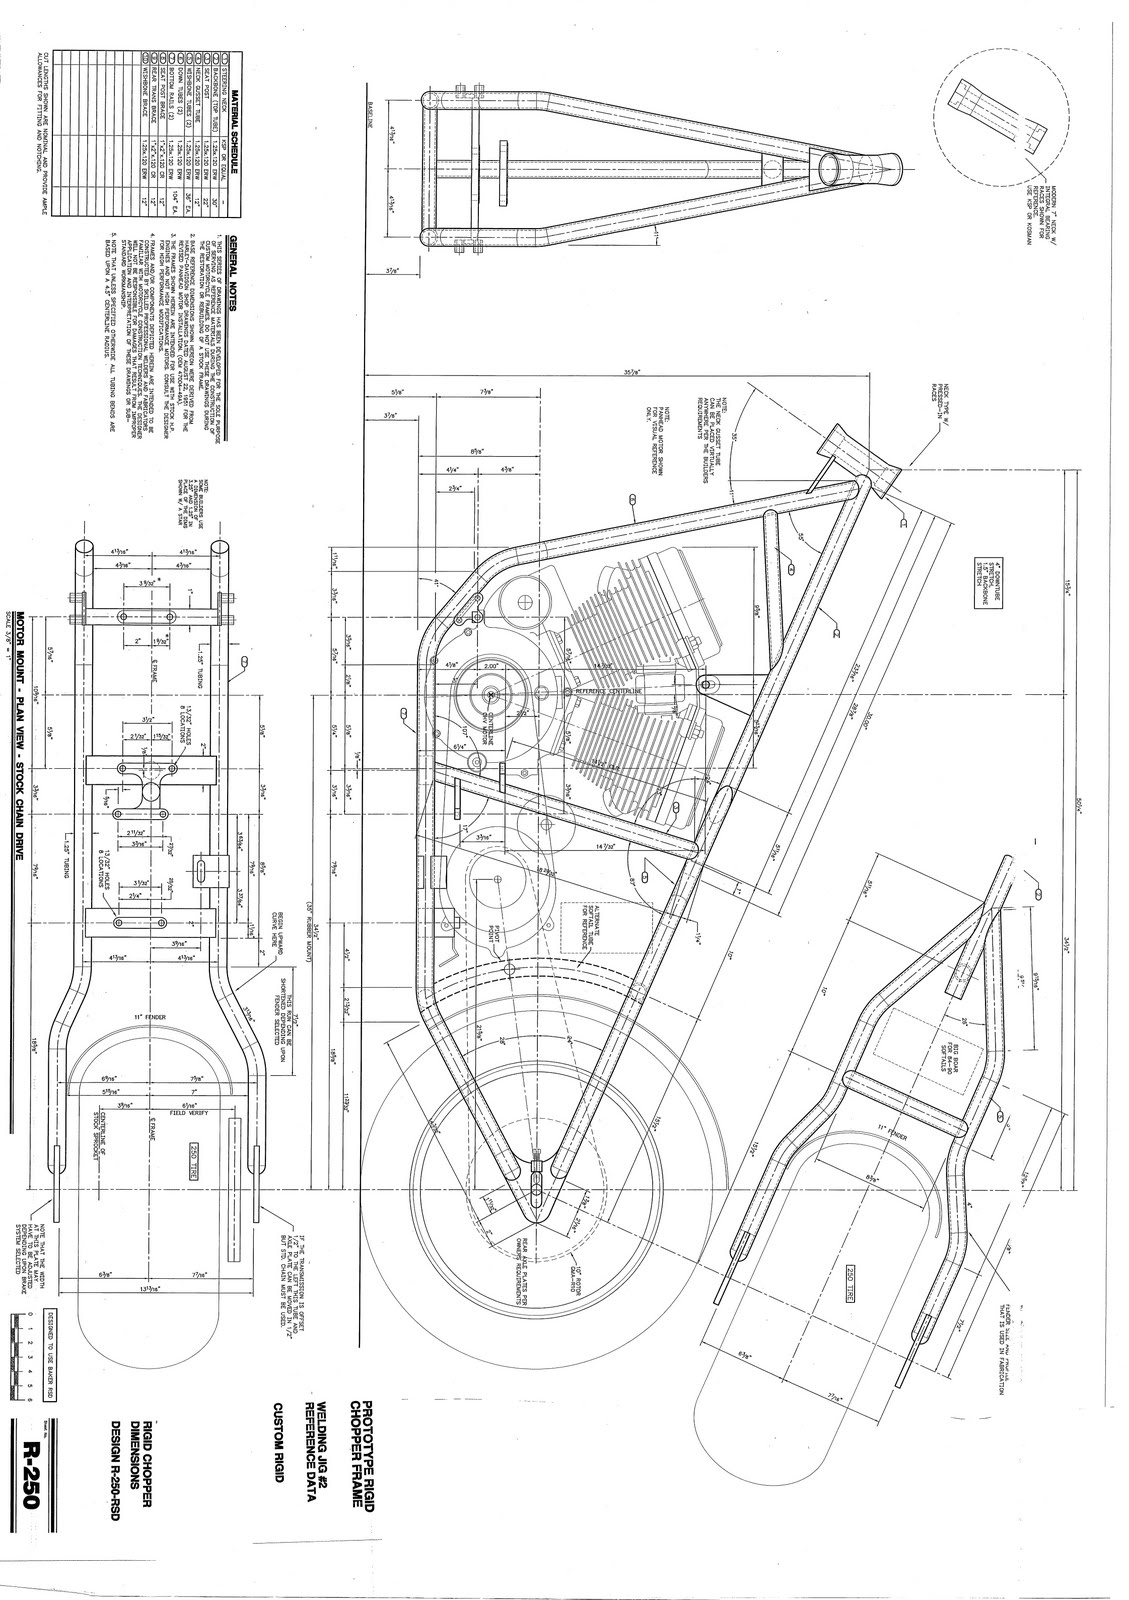 harley softail frame diagram 4 wire trailer wiring troubleshooting blog archives mnogosoftabell